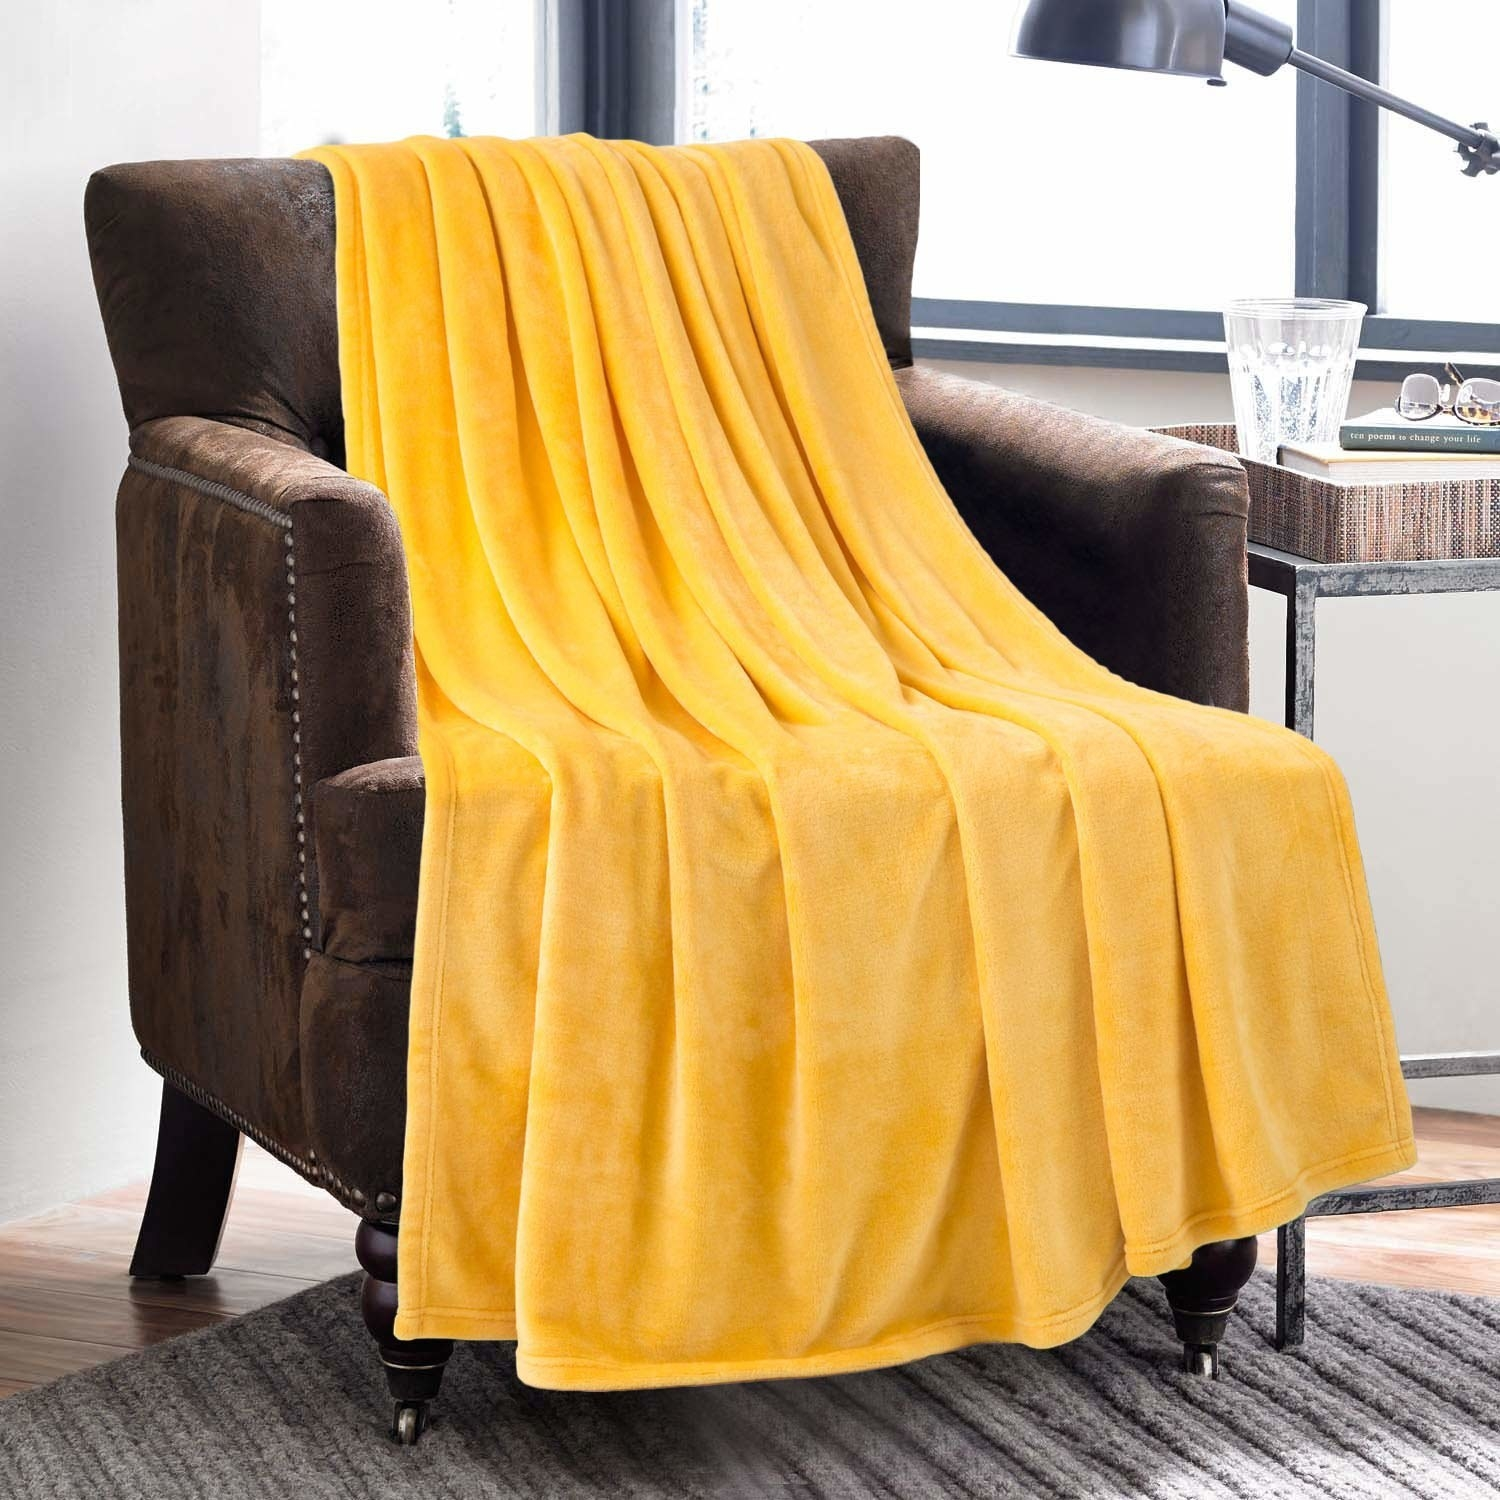 The throw in yellow draped over an armchair